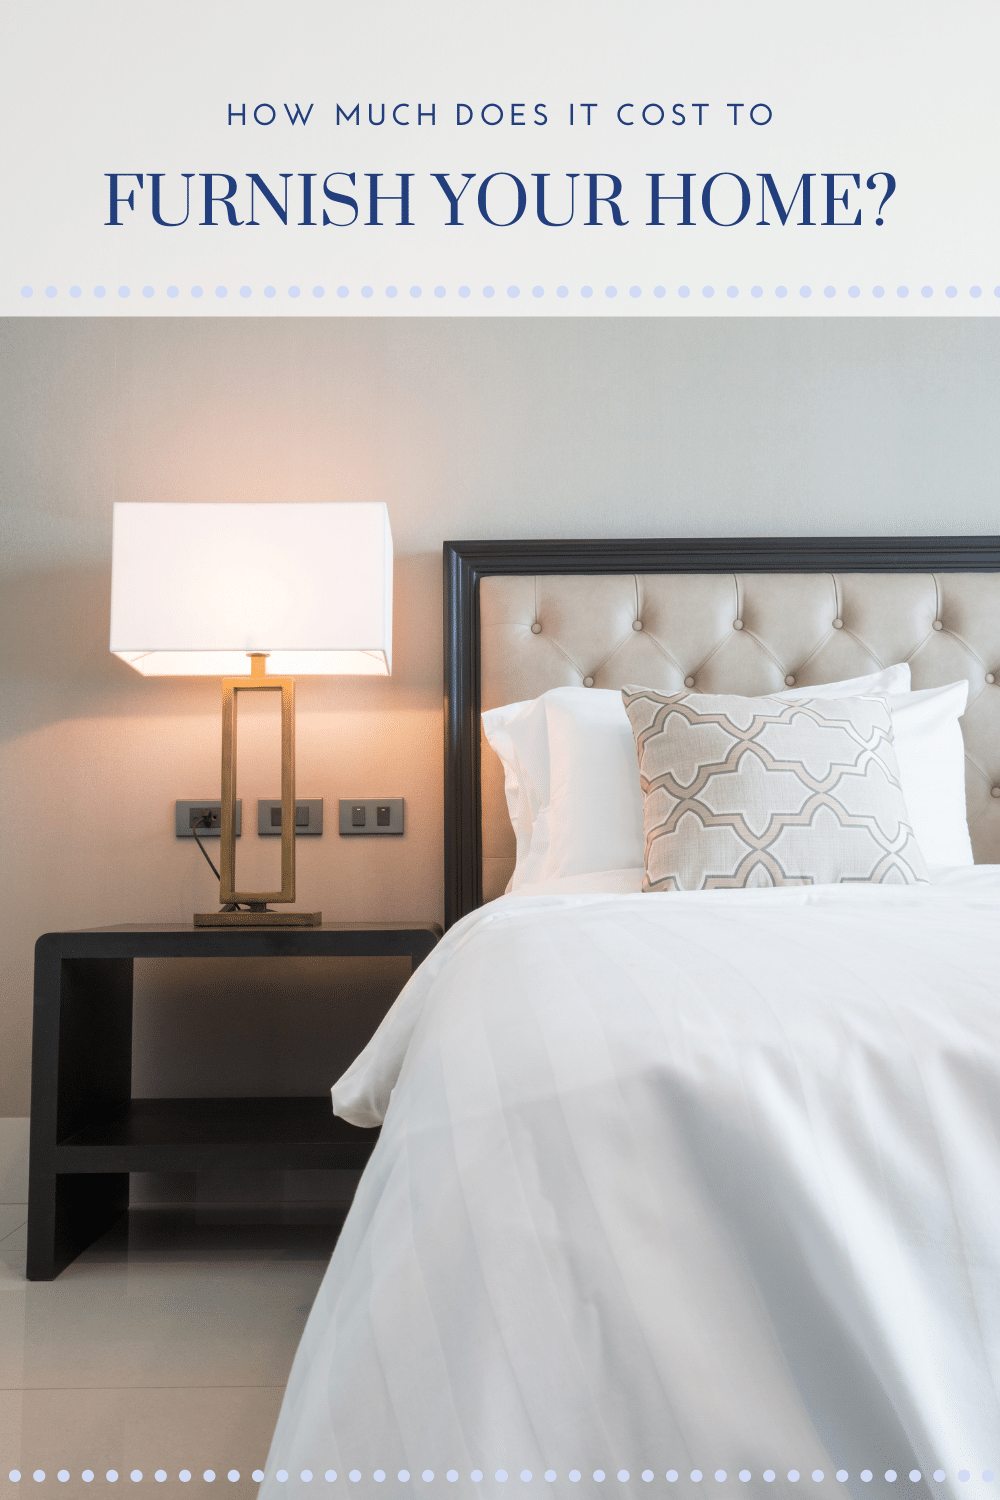 How Much Does it Cost to Furnish Your Home in 2020?